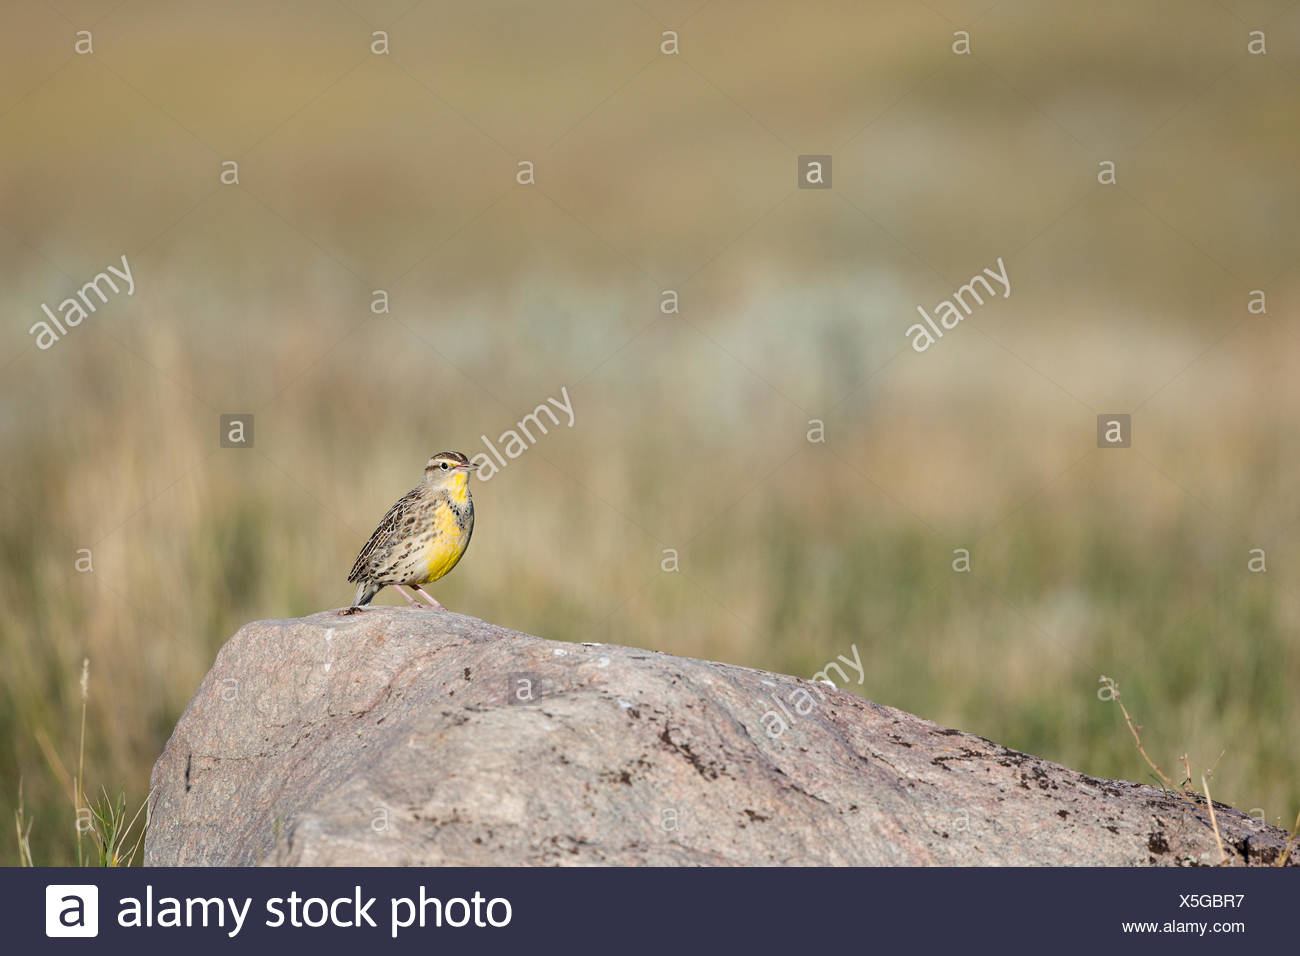 Western meadowlark (Sturnella neglecta), adult in winter plumage, Grasslands National Park, Saskatchewan. Stock Photo